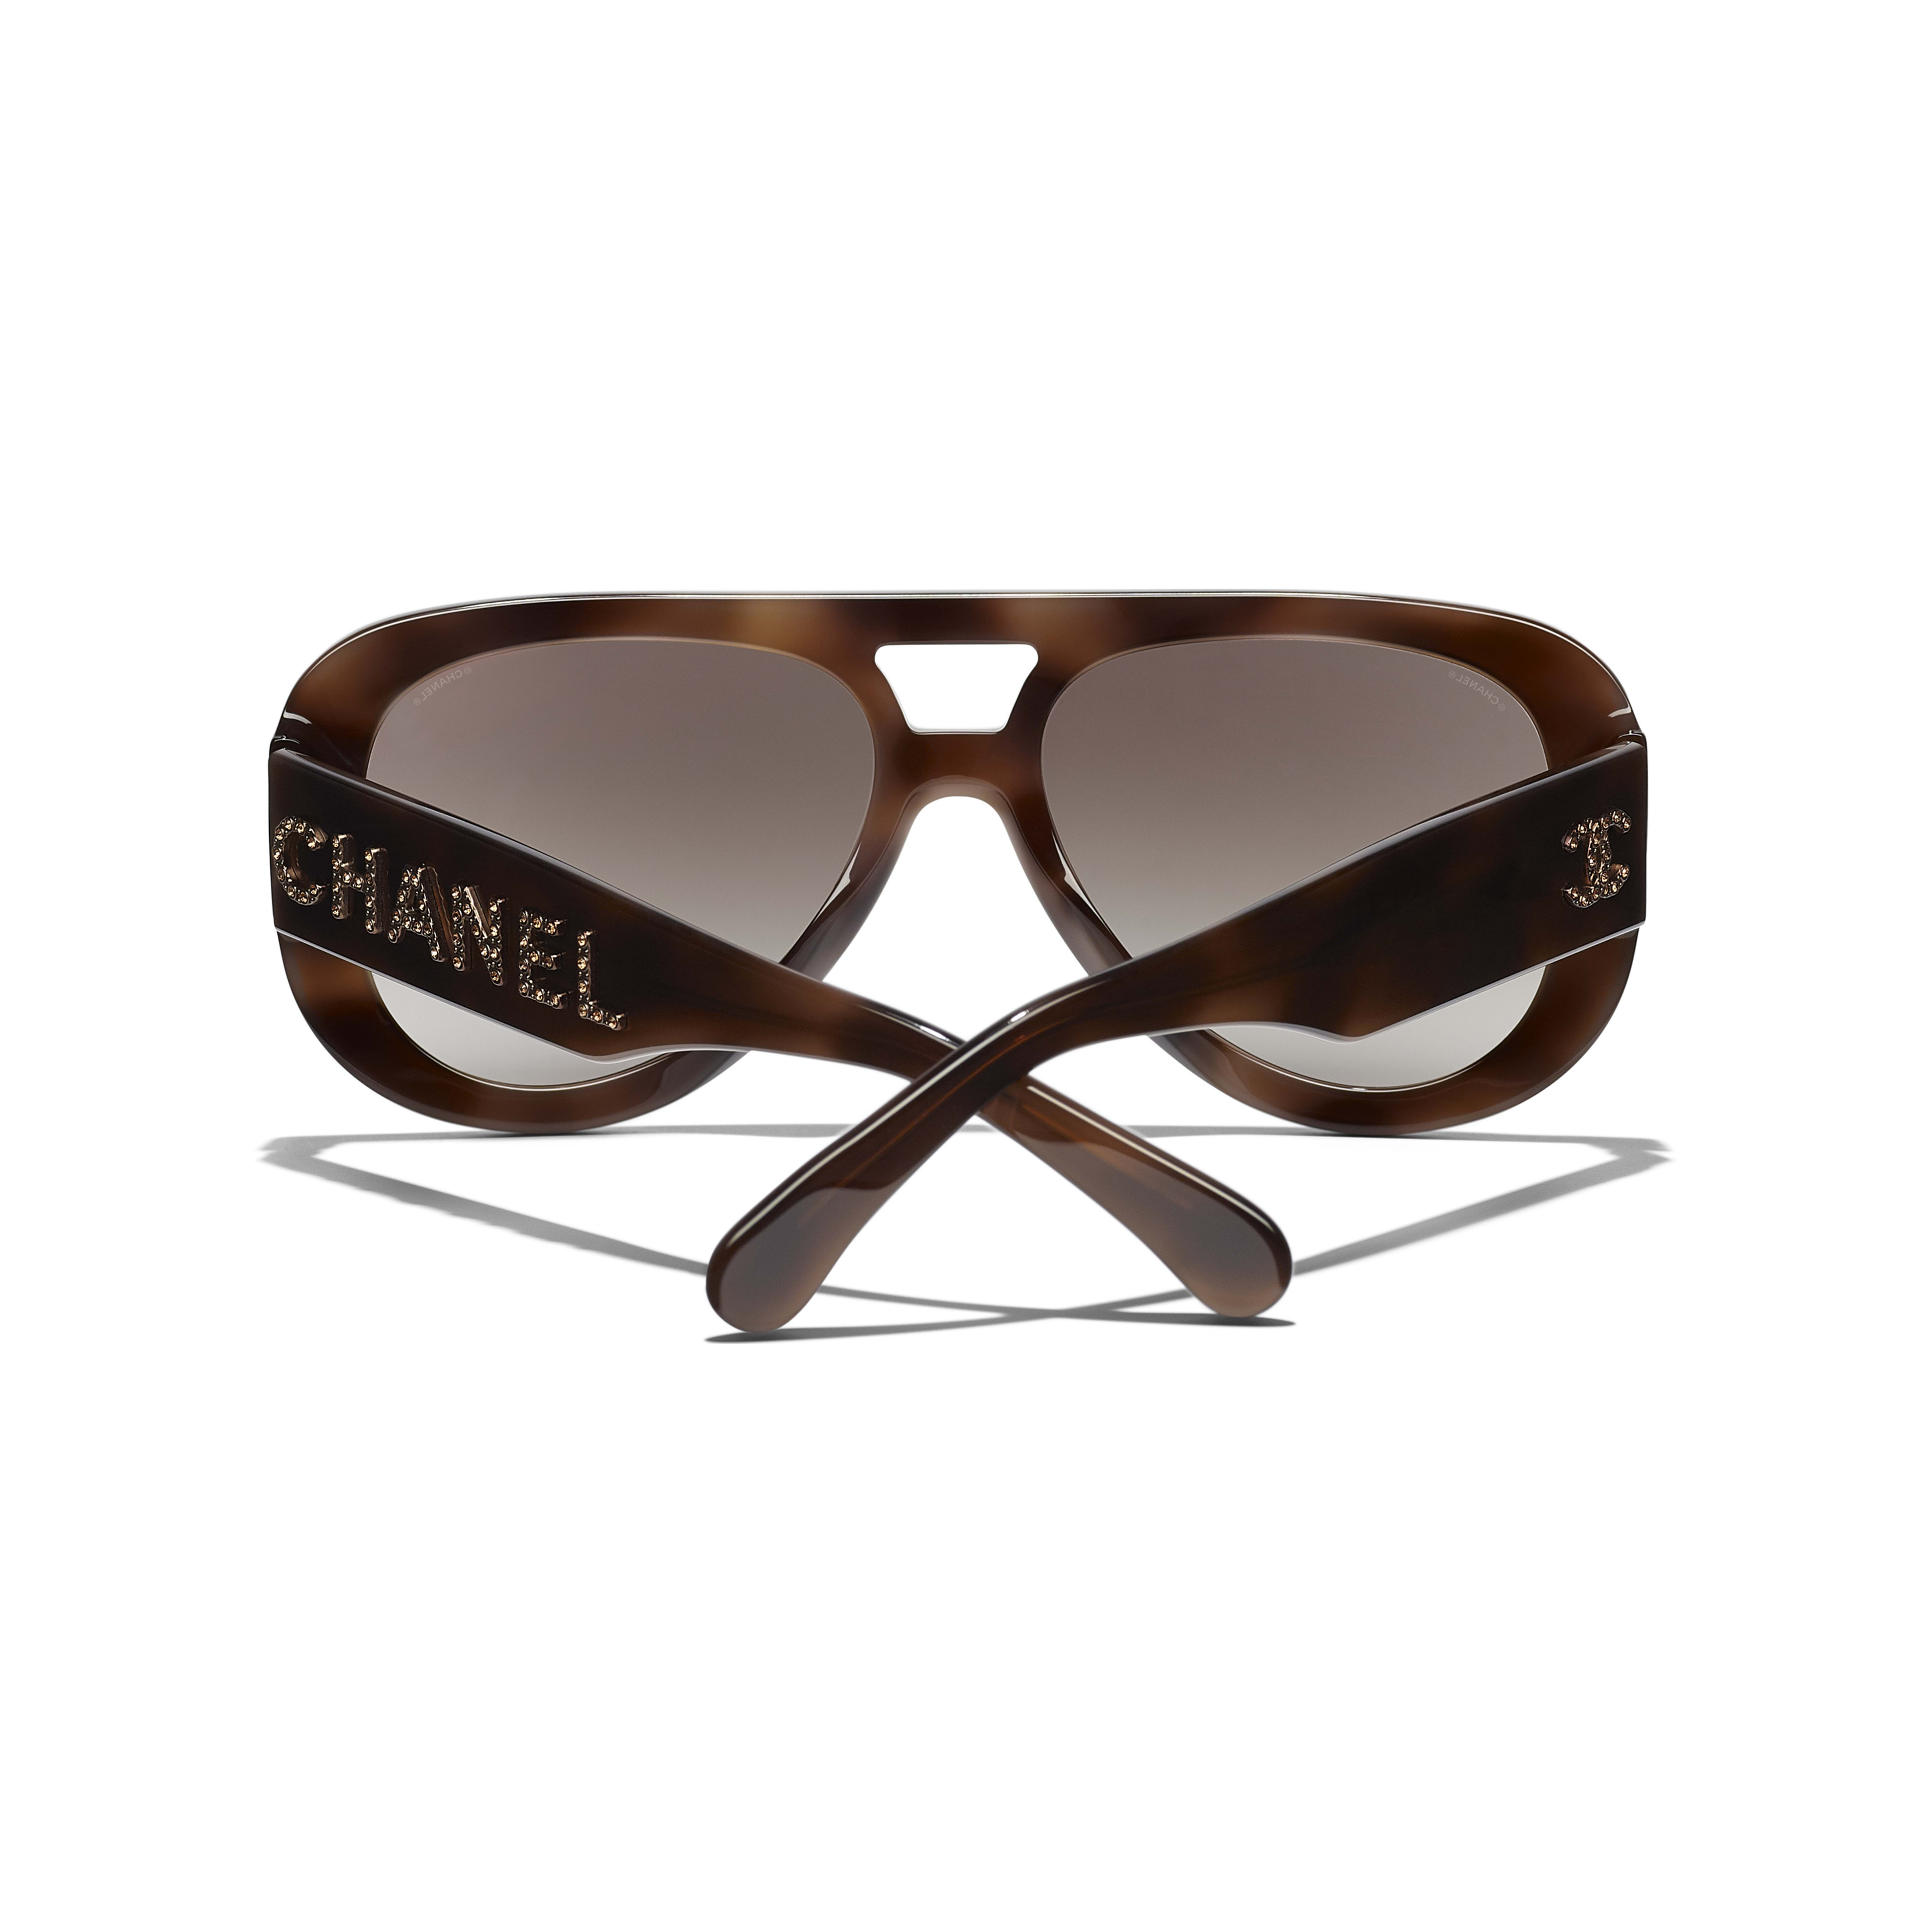 Pilot Sunglasses - Tortoise - Acetate & Diamanté - CHANEL - Extra view - see standard sized version